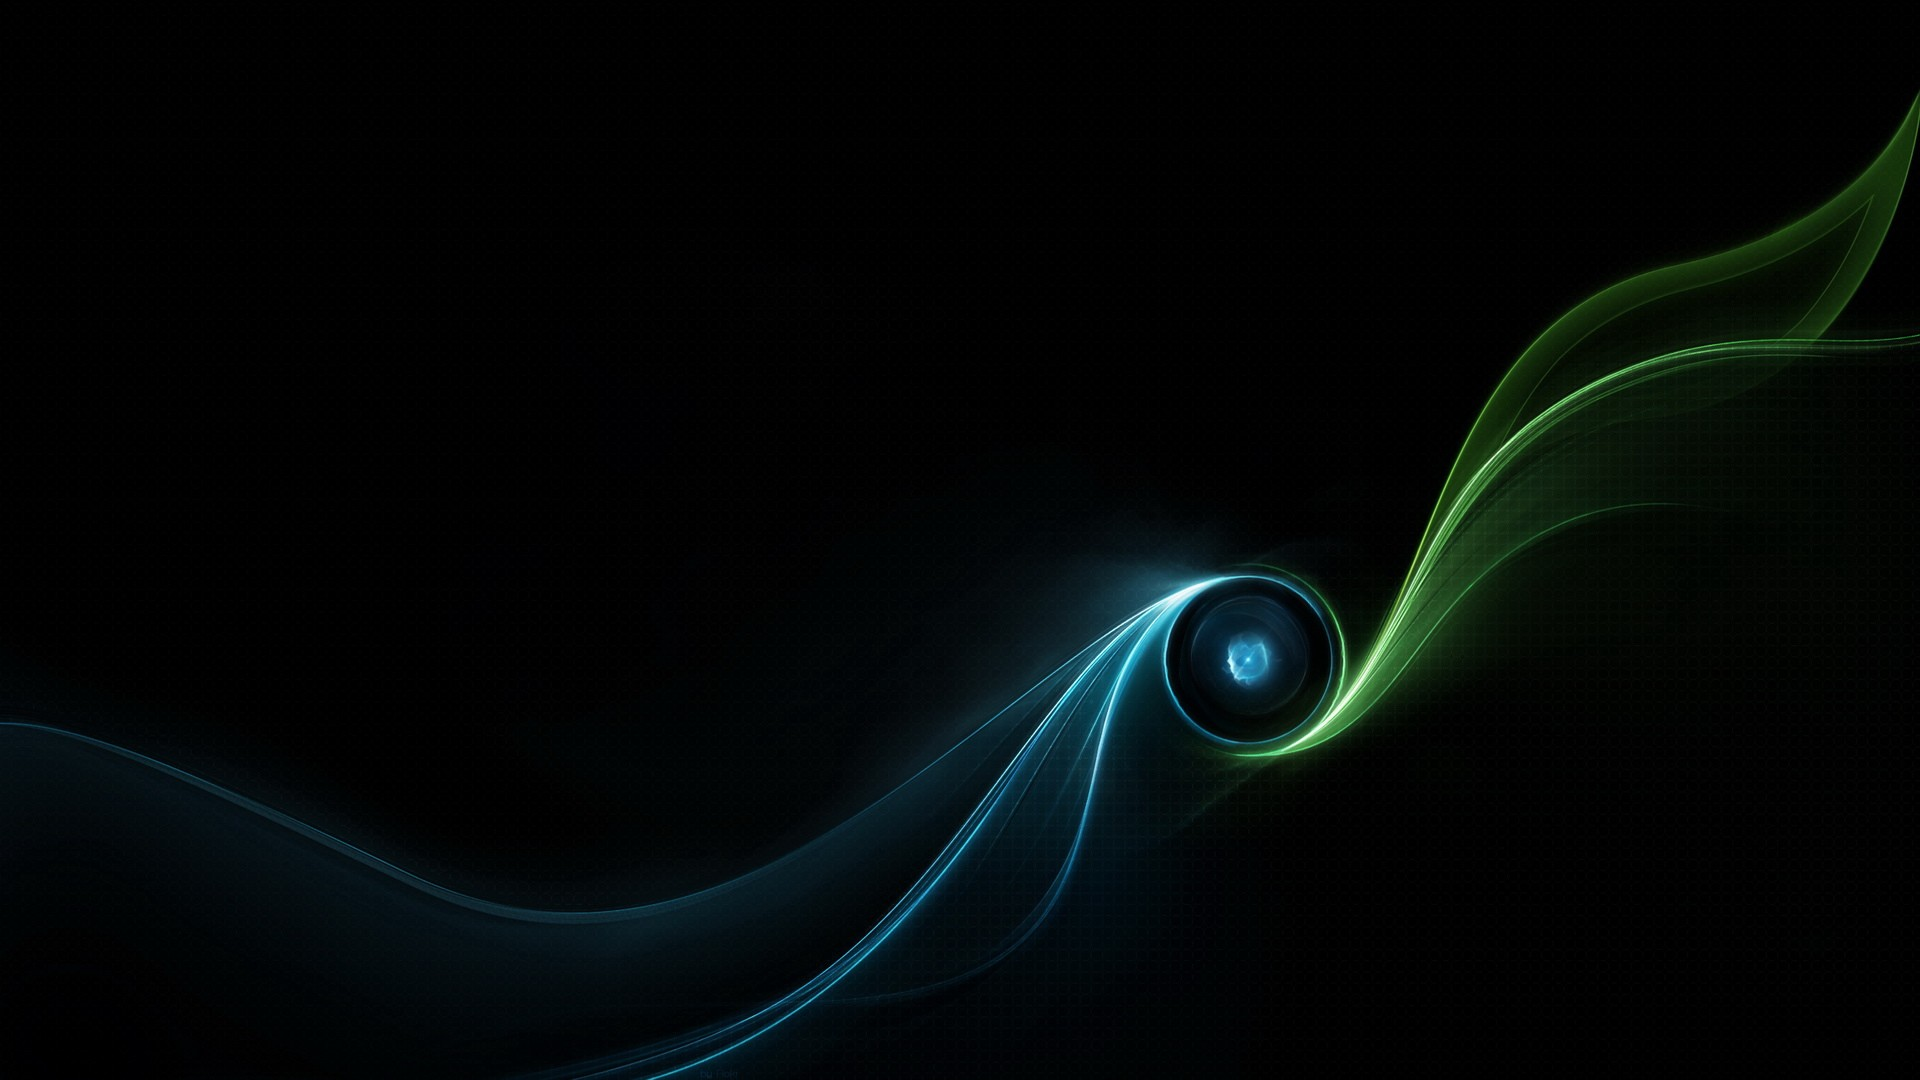 Abstract Black Wallpaper 1920x1080 Abstract Black Swirls 1920x1080